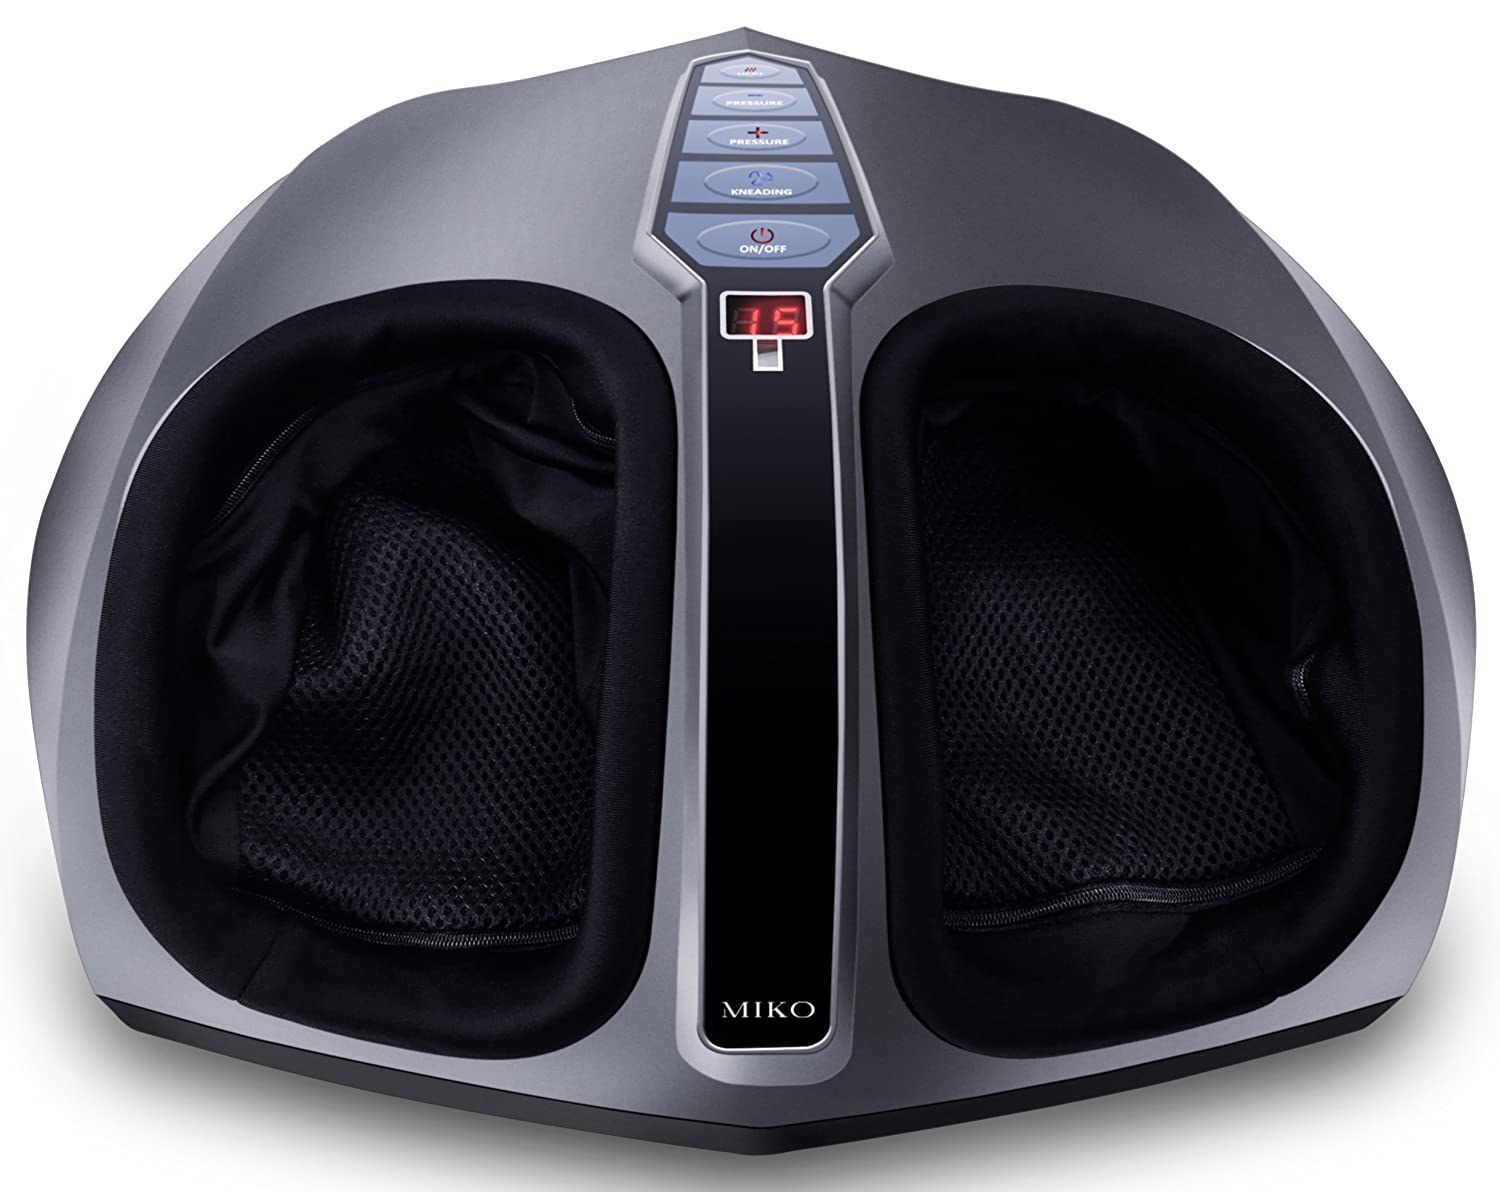 Amazon.com  Miko Shiatsu Foot Massager With Deep-Kneading, Multi-Level  Settings, And Switchable Heat Charcoal Grey  Health   Personal Care df42986cf9b